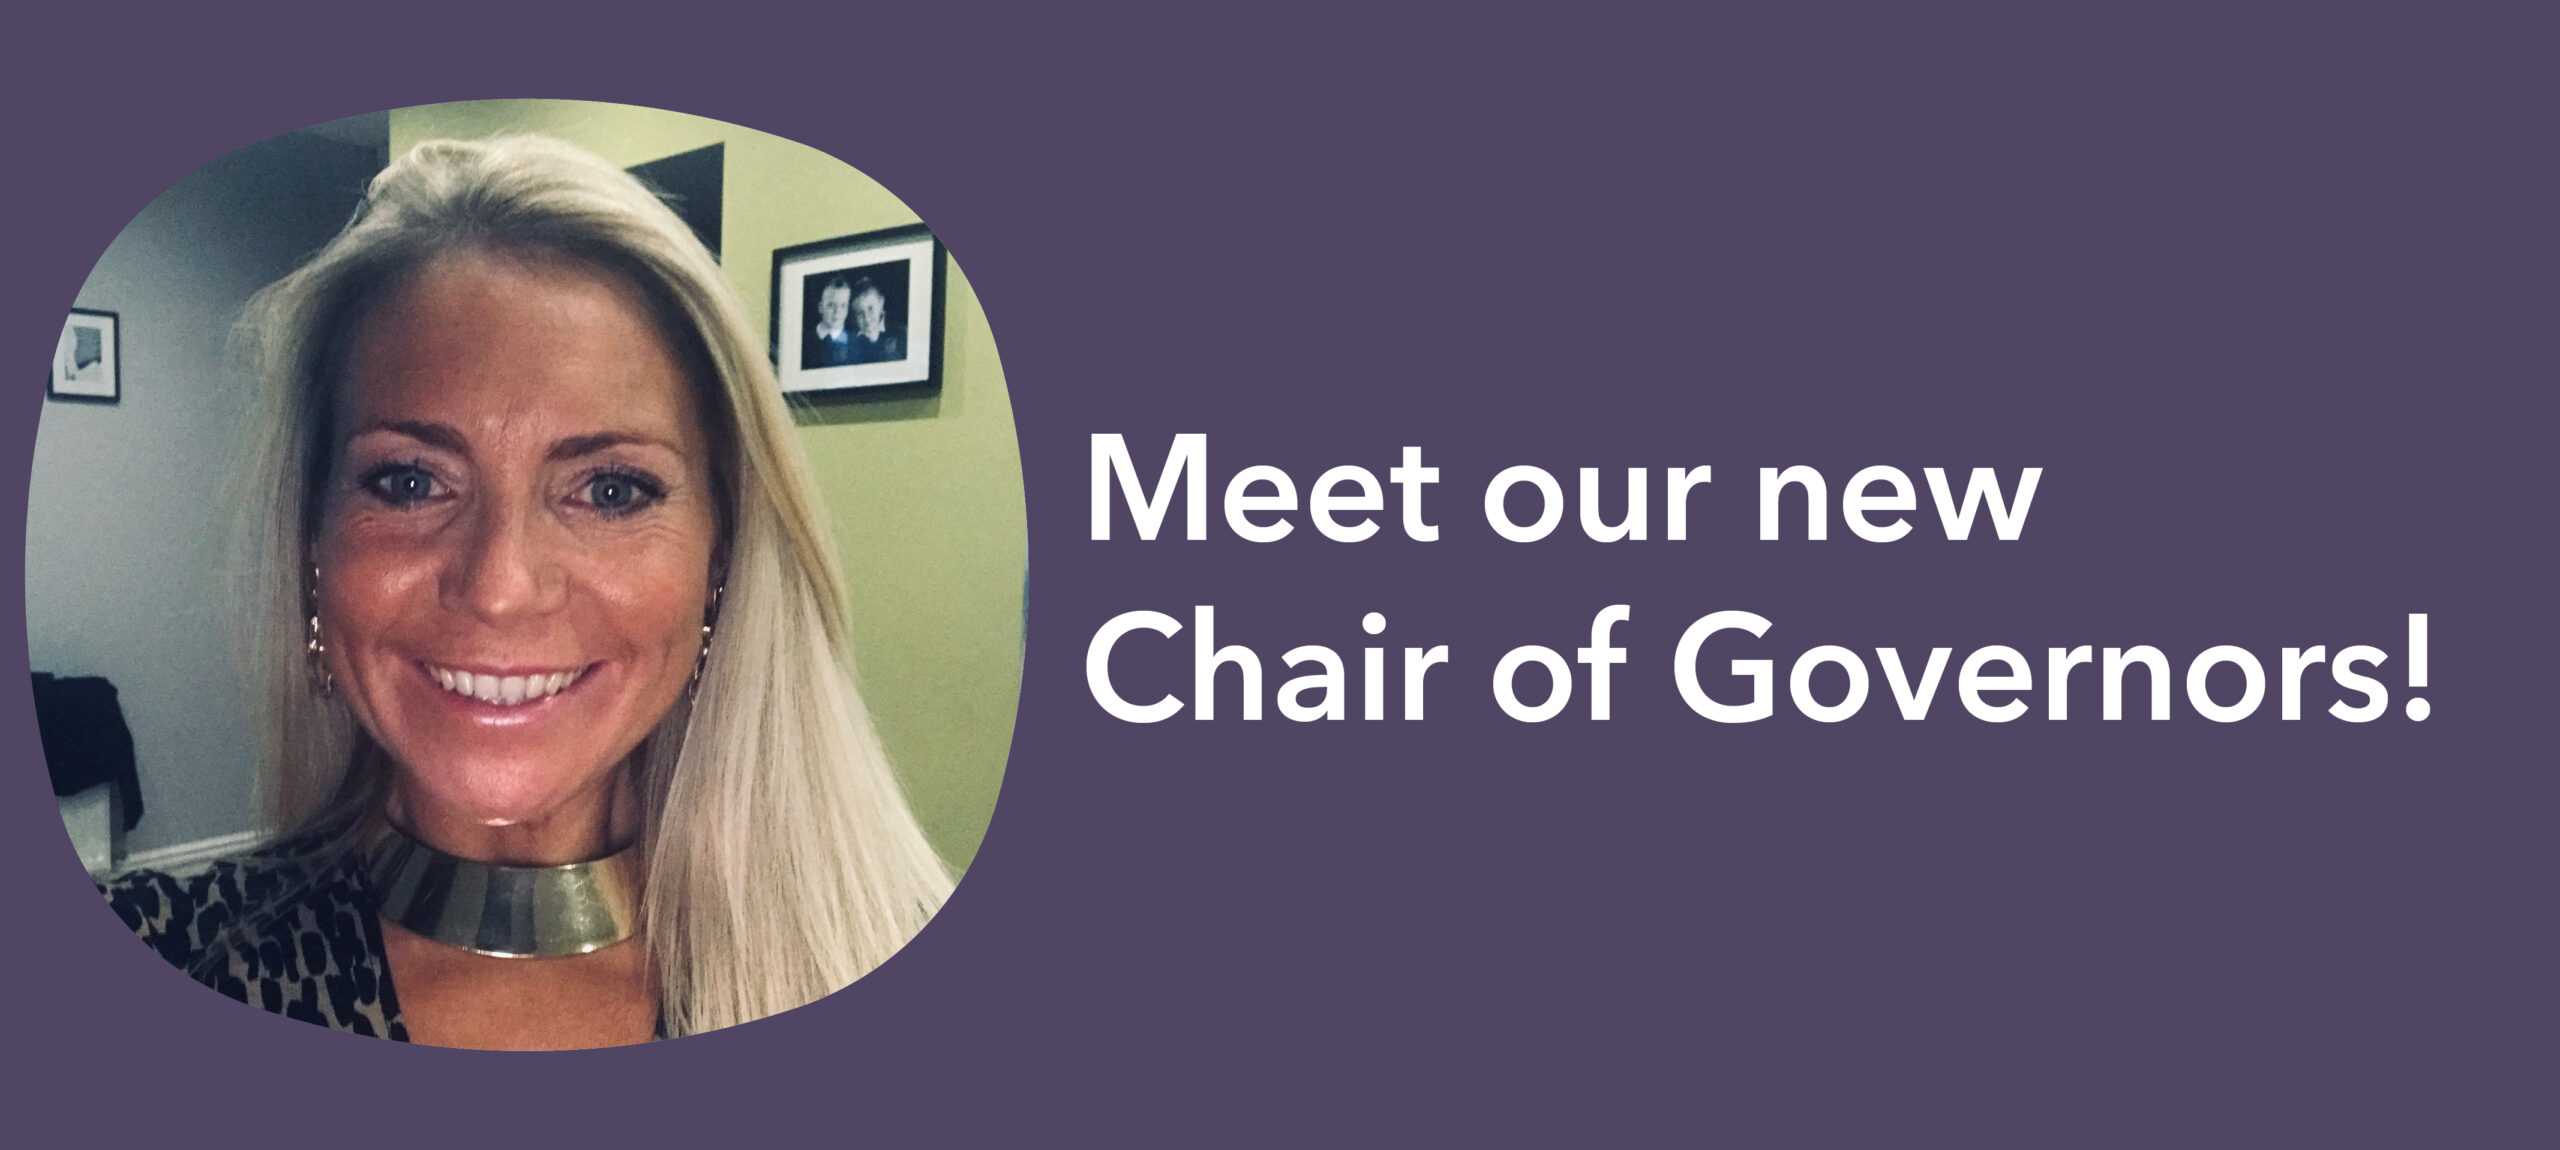 Meet our new Chair of Governors!